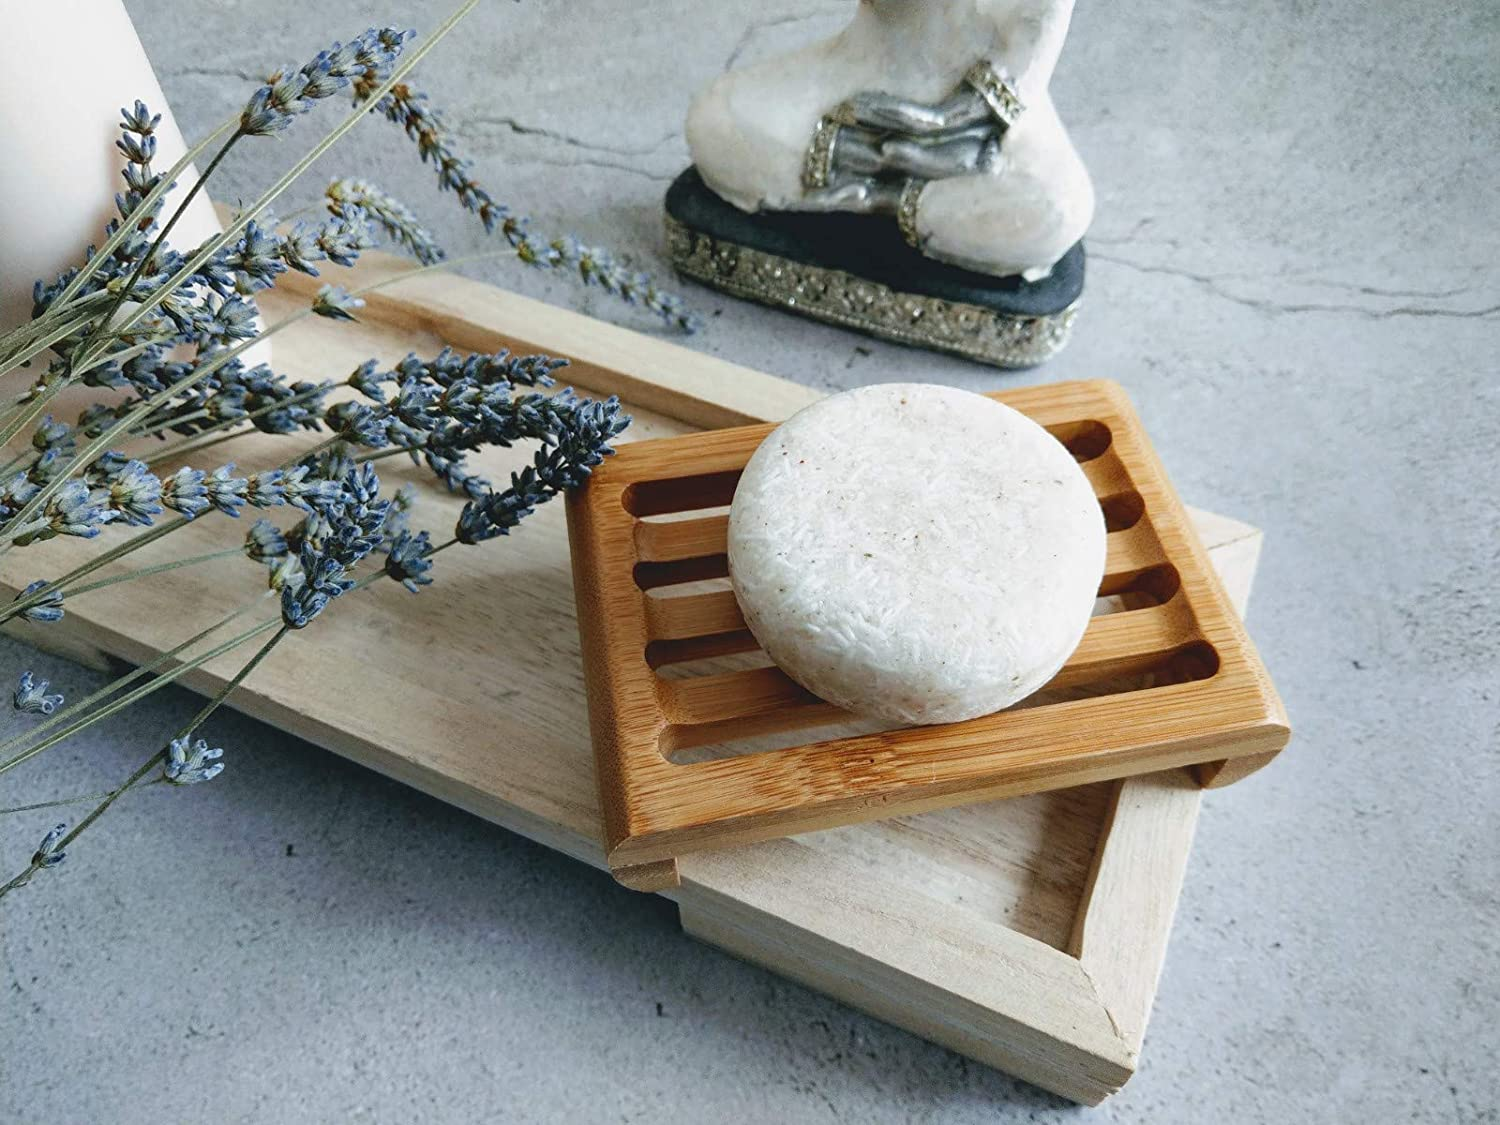 New Living Bamboo Soap Dish Eco Friendly Gift 1 Eco Product Bamboo Soap Tray 11cm x 7.5 cm